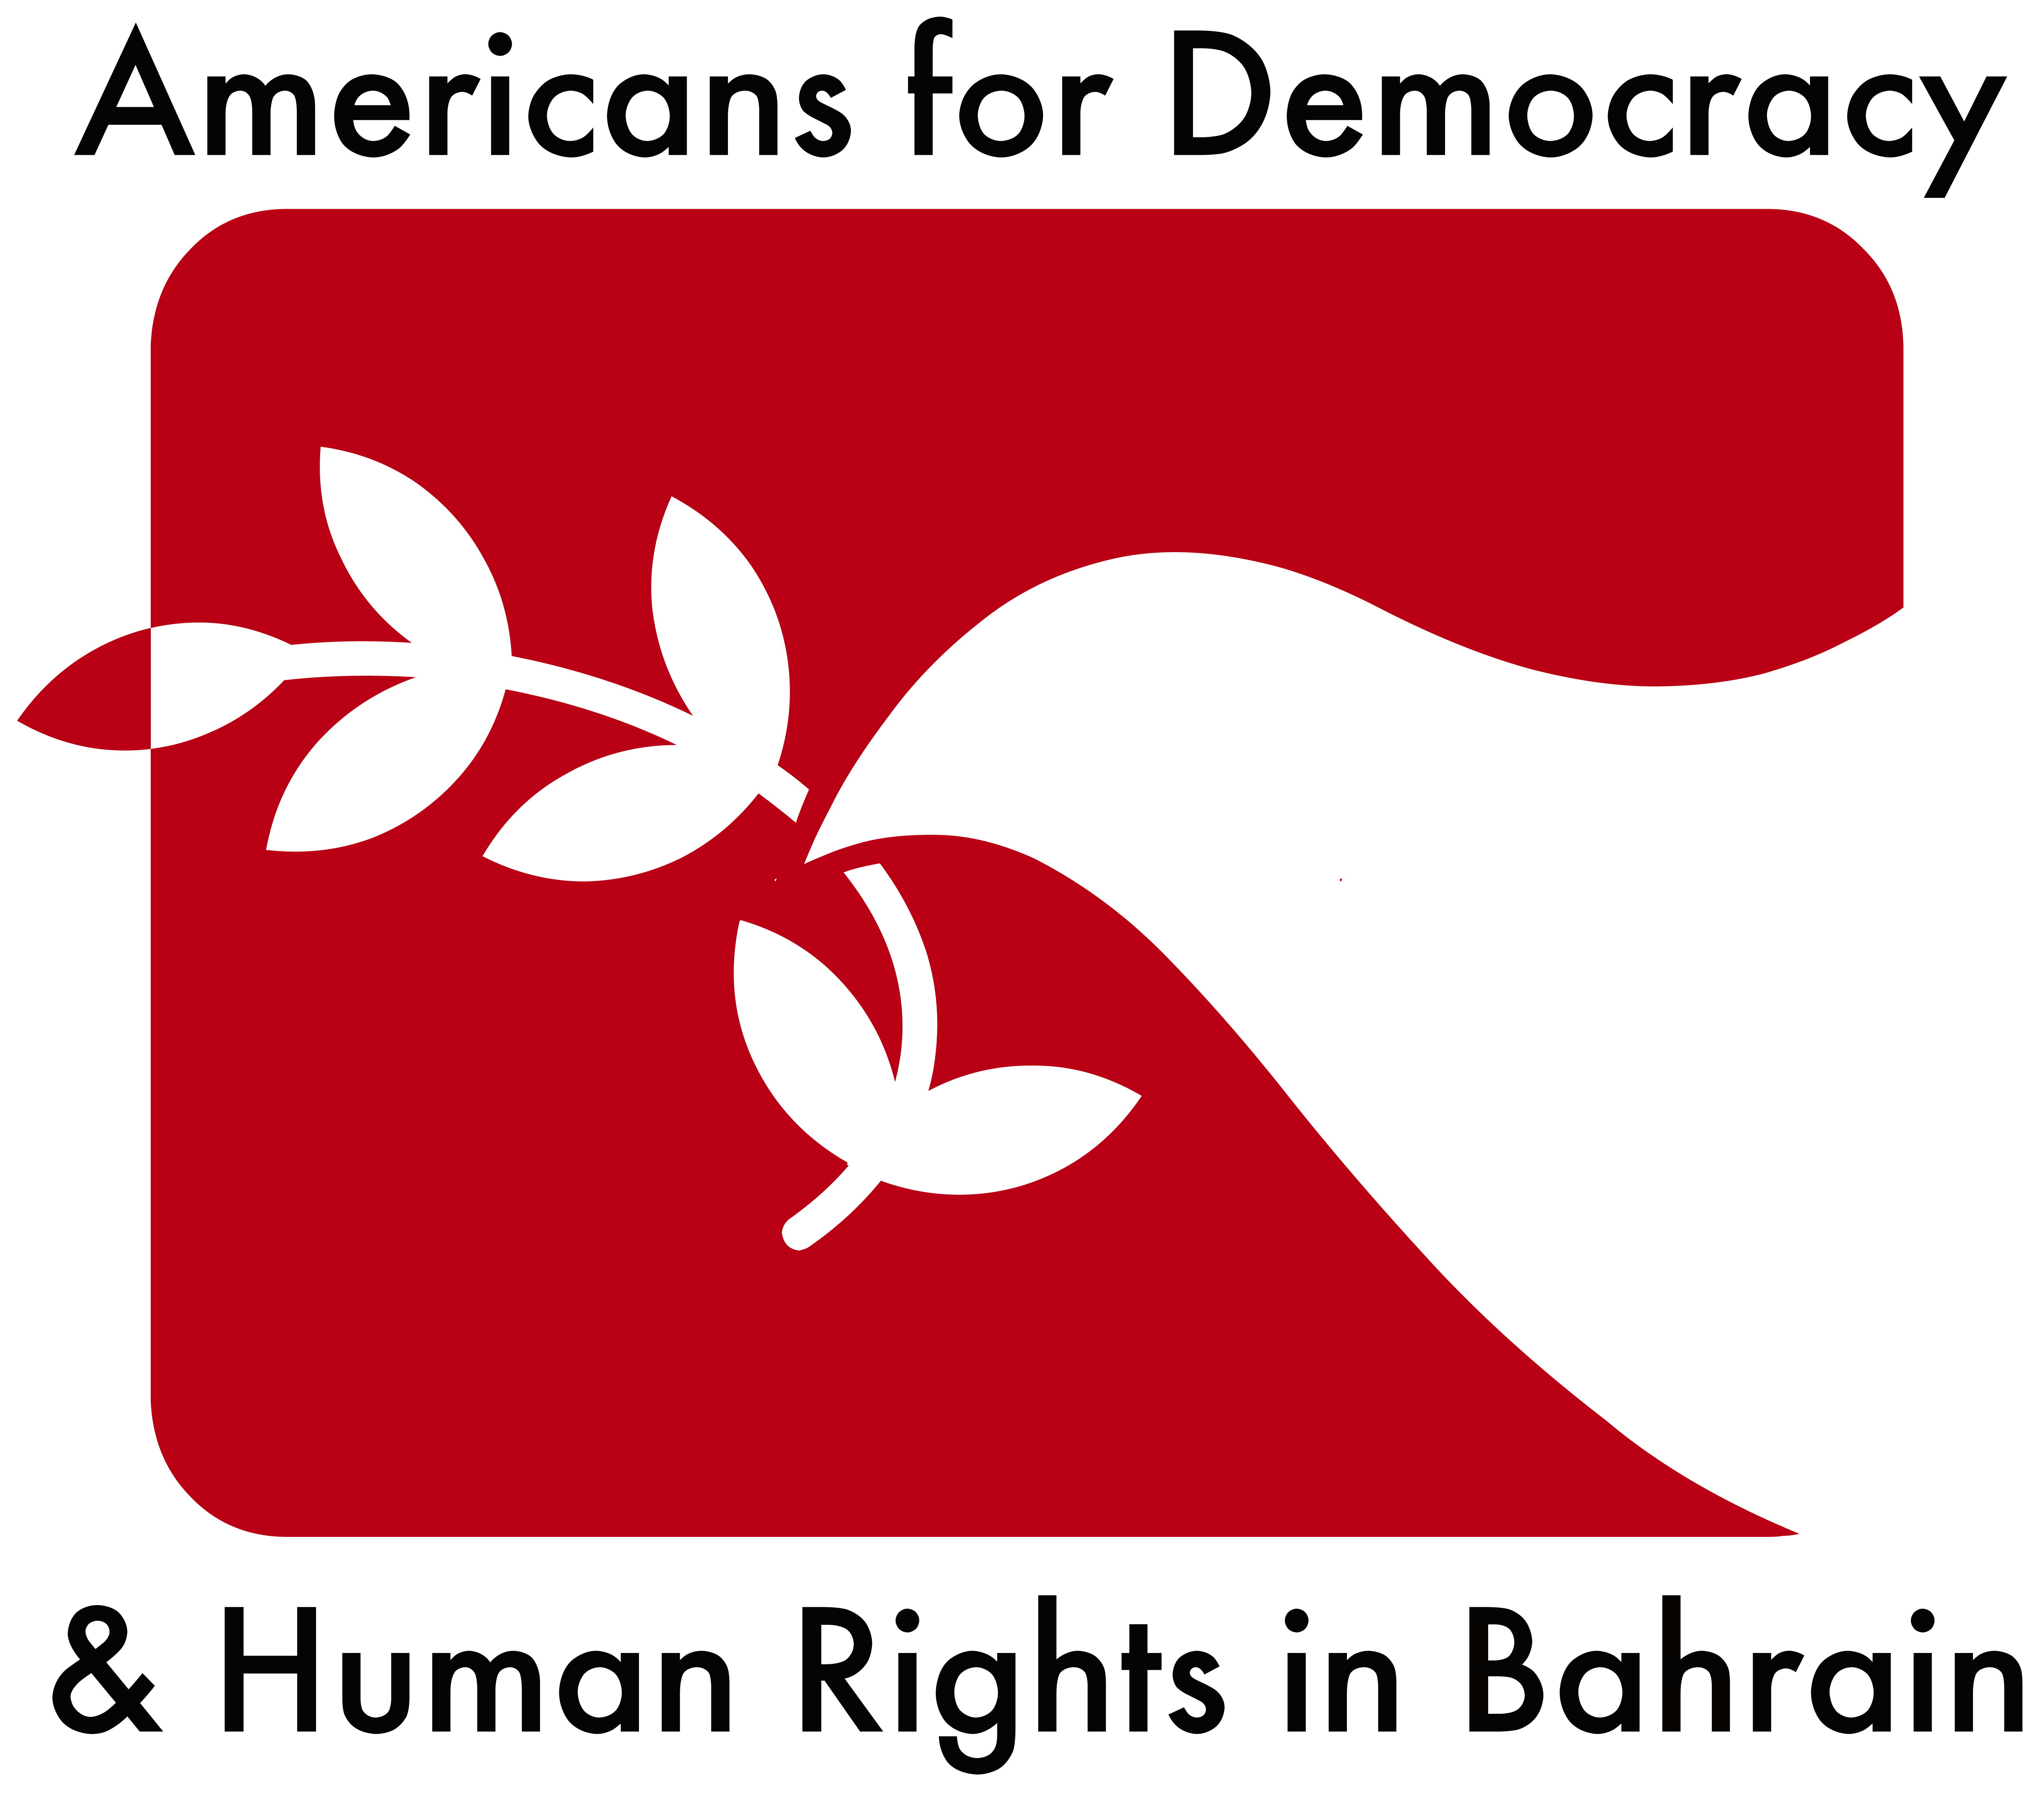 American_for_Human_Rights_and_Democracy_in_Bahrain.jpg